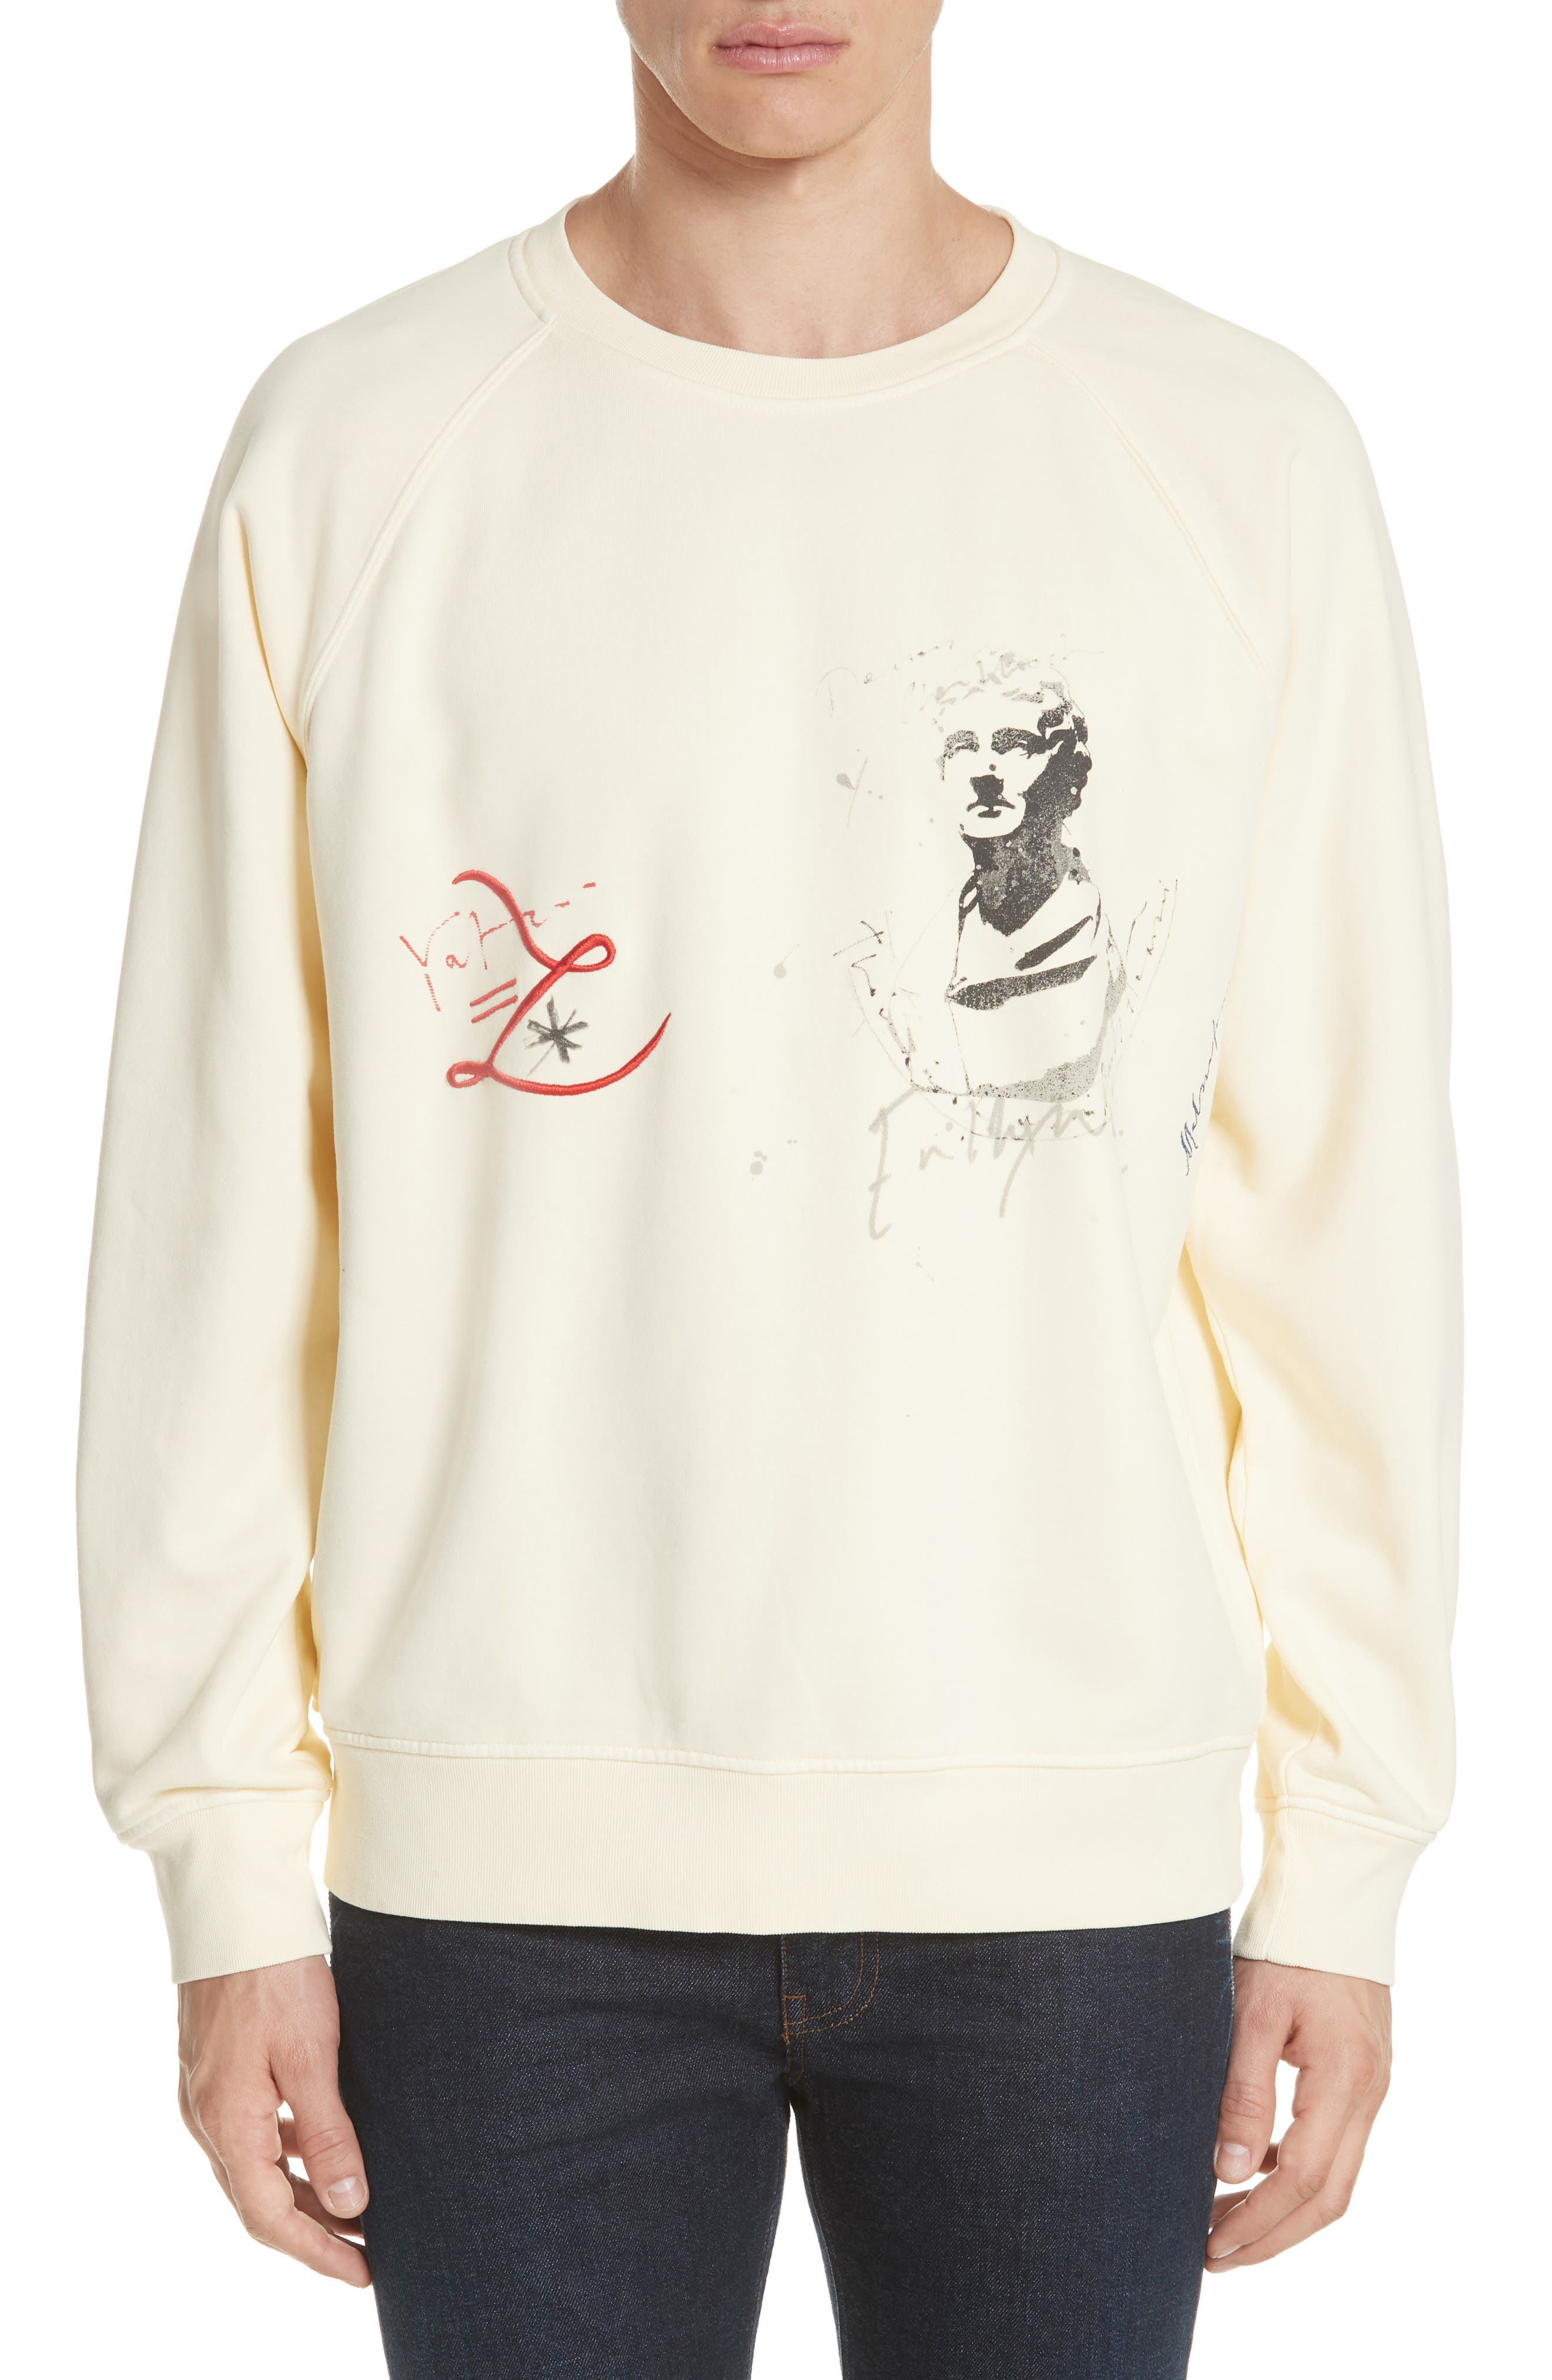 Earlford Graphic Sweatshirt,                         Main,                         color, Pale Yellow